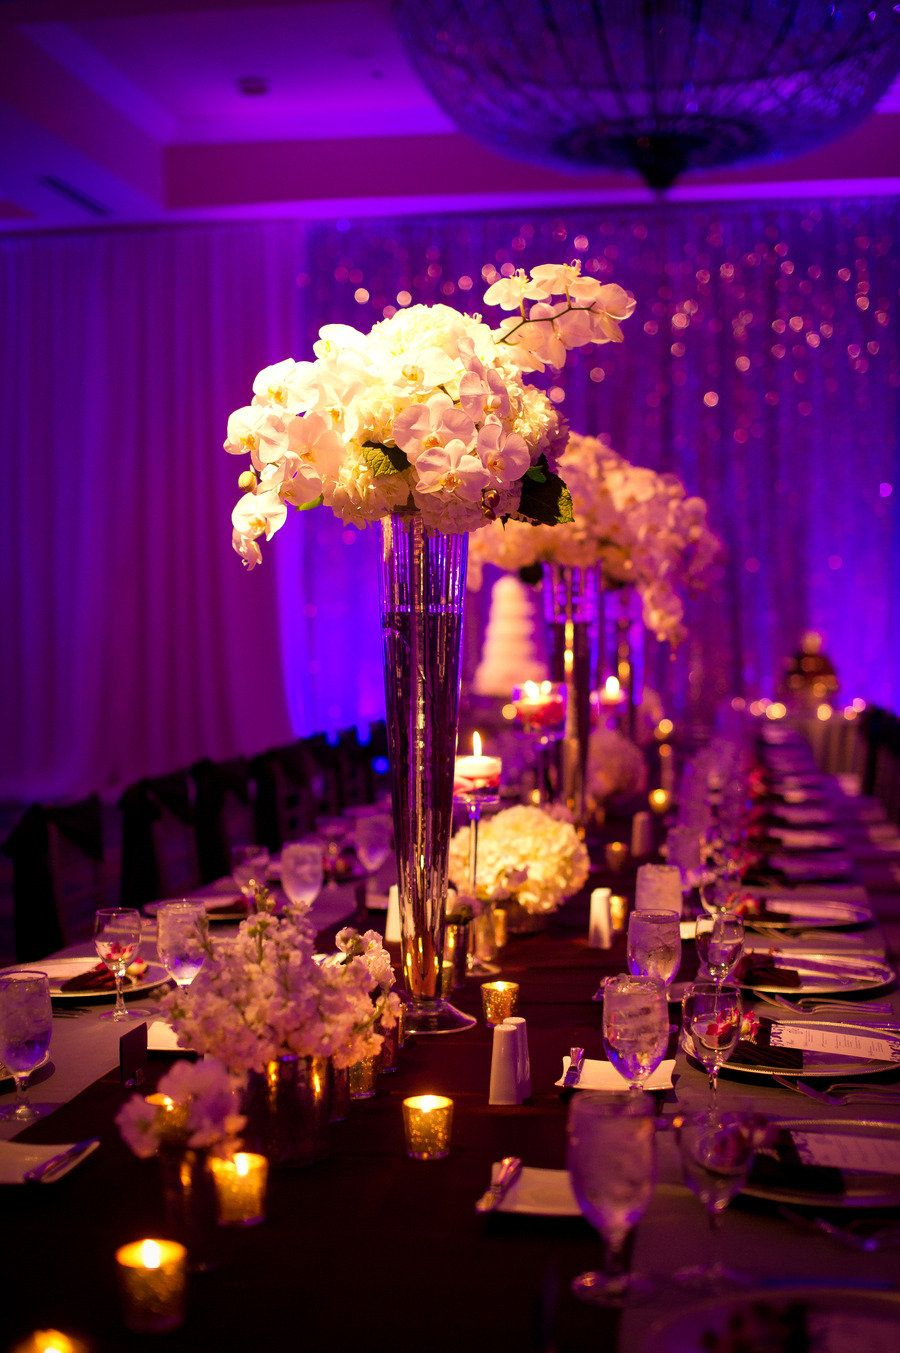 Wedding venue decoration images  Four Seasons in Austin Texas Wedding by AJH Photography  Event